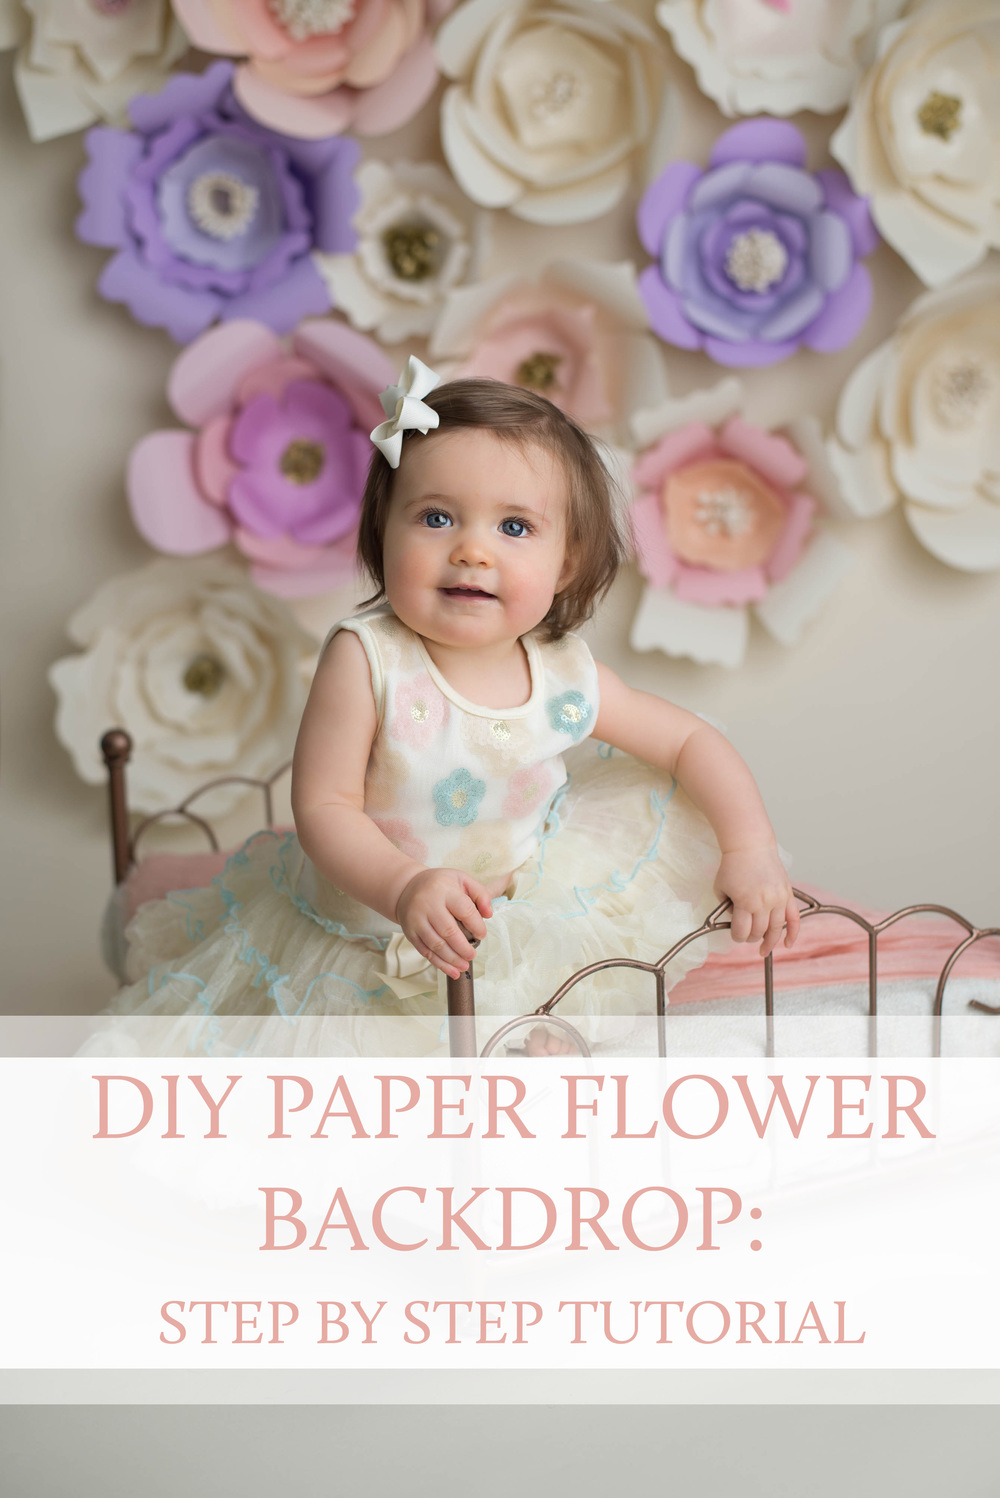 DIY+paper+flower+backdrop+step+by+step+tutorial.jpg